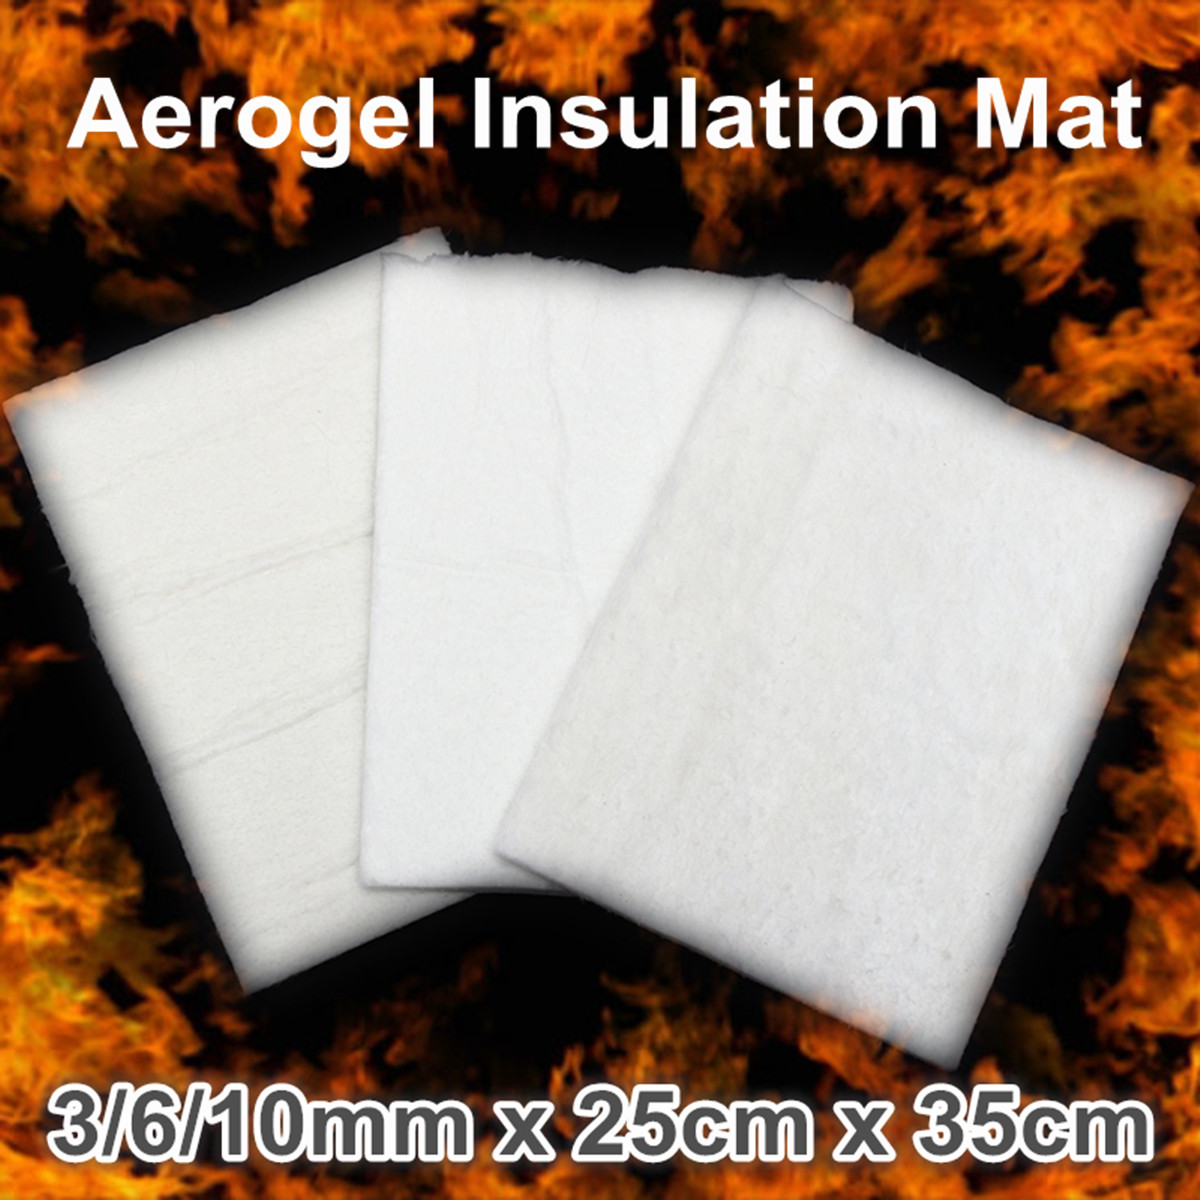 3/6/10mm Thickness Super Light Silica Aerogel Insulation Mat Lightest Solid Pad For Industrial Pipelines Storage Tanks 25x35cm